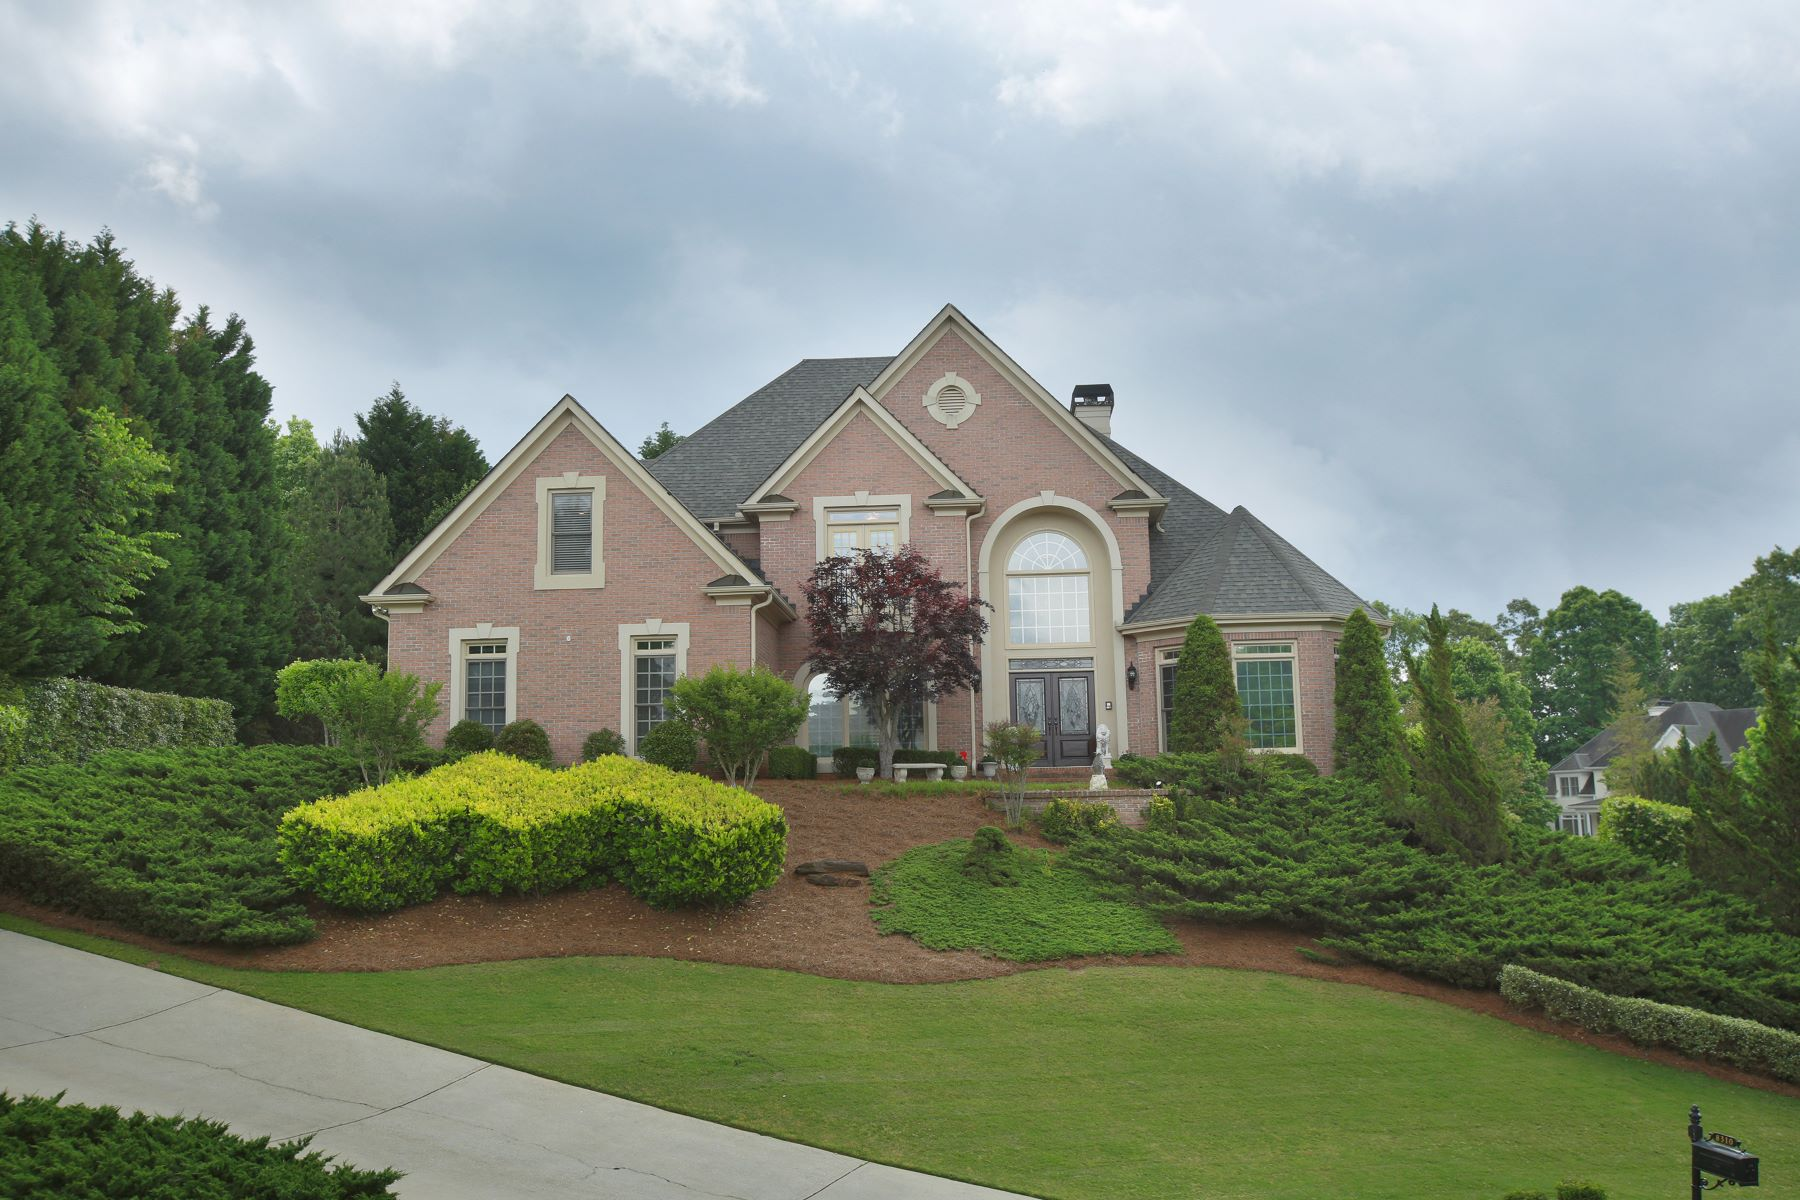 Single Family Home for Sale at A Fabulous Home in a Gated Golf Community 8310 Royal Troon Drive Duluth, Georgia, 30097 United States